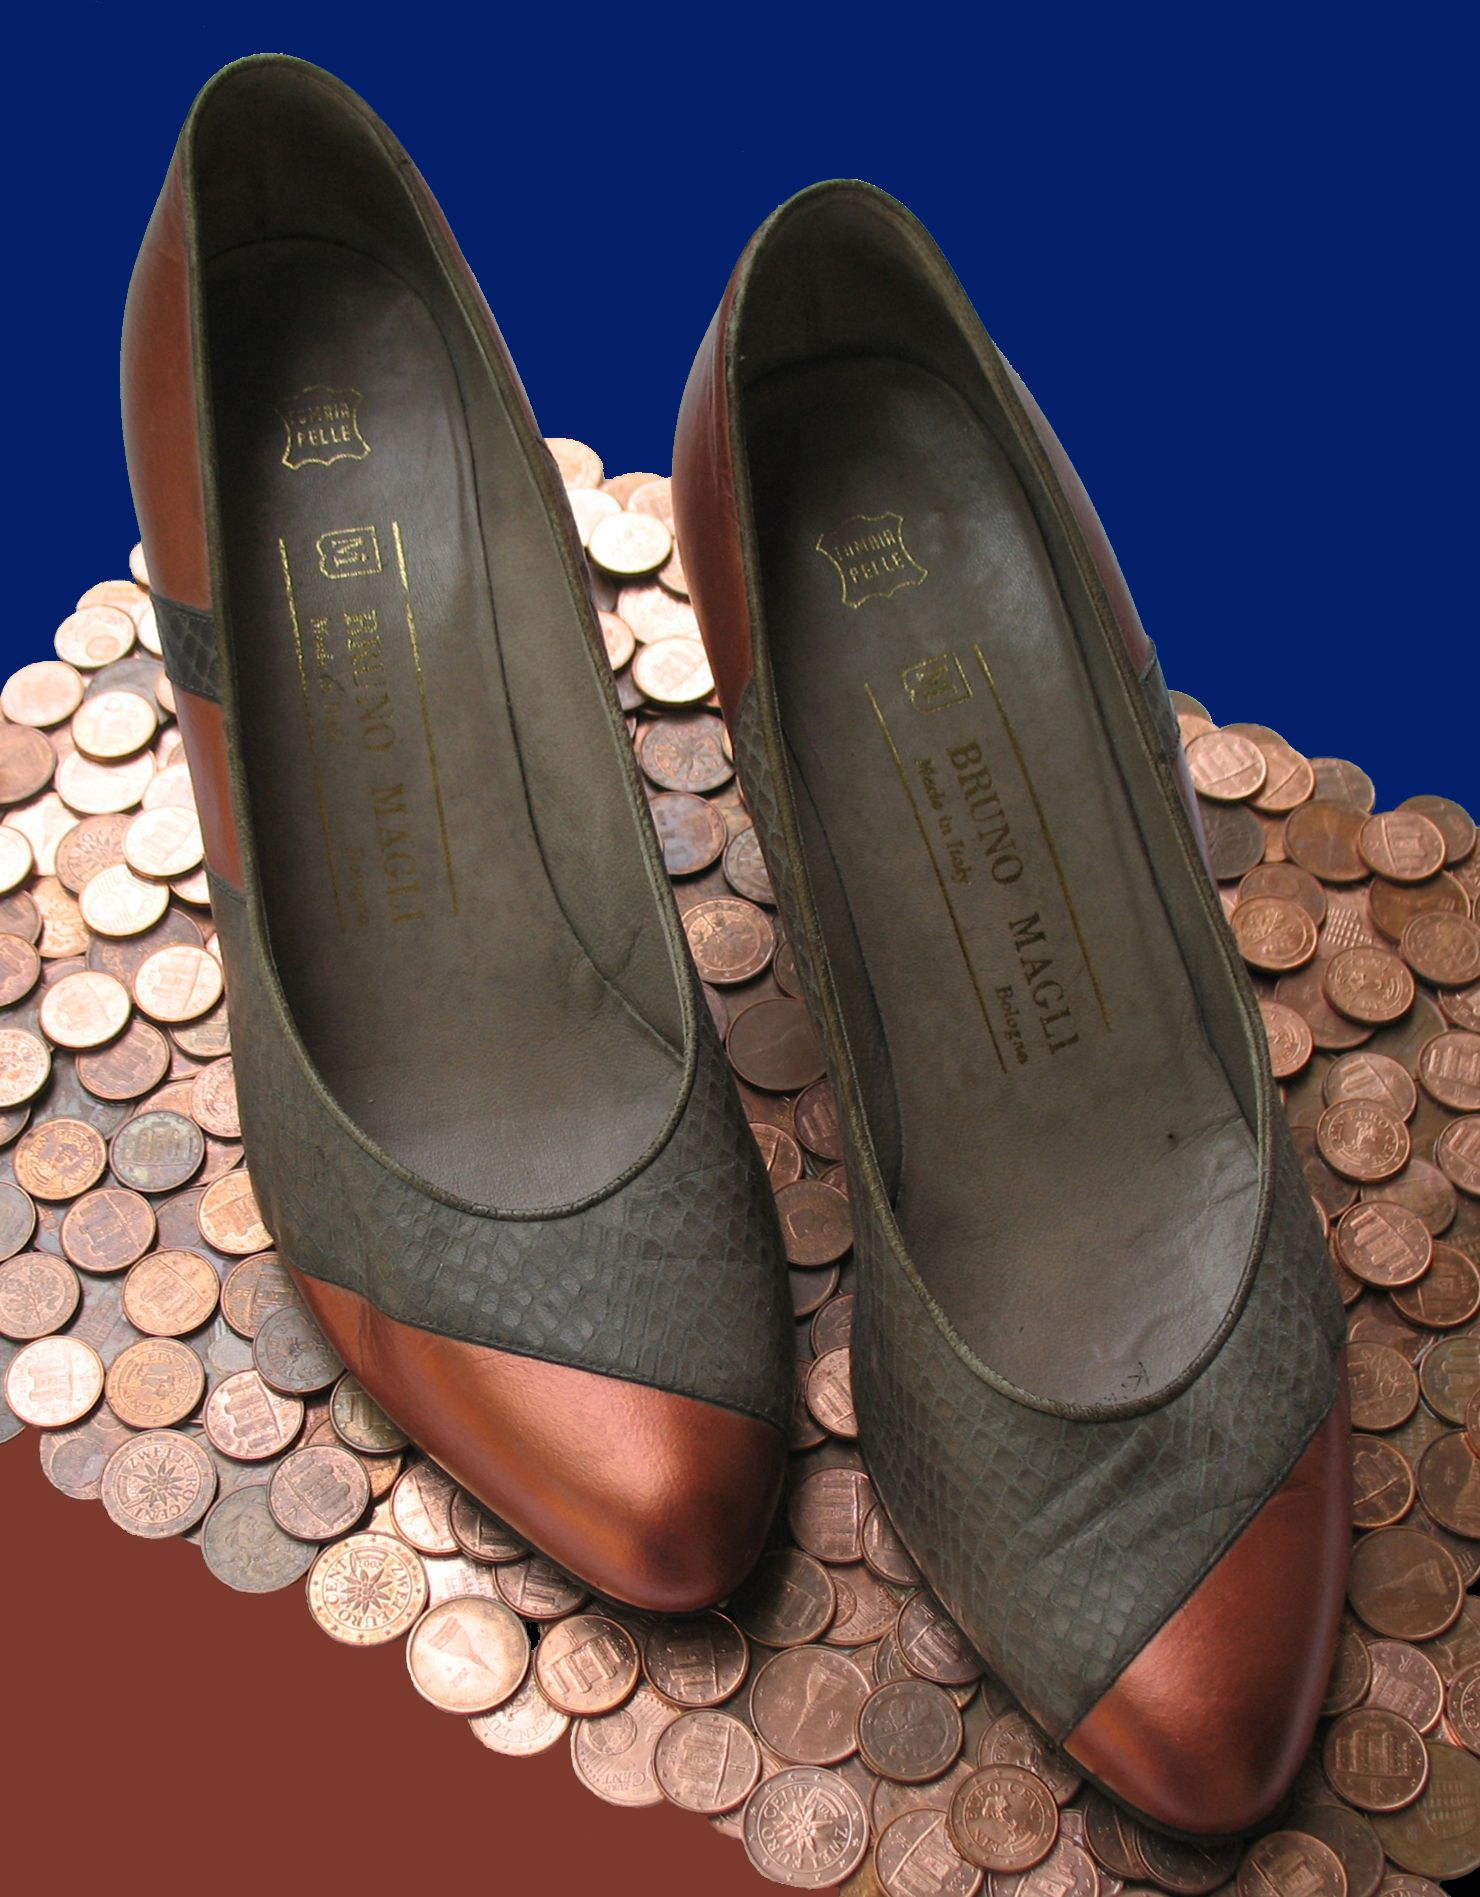 Di Rame - Paolo Buzi, 2007 (My Woman's tale in Her shoes) #copper paint on shoes #brunomagli